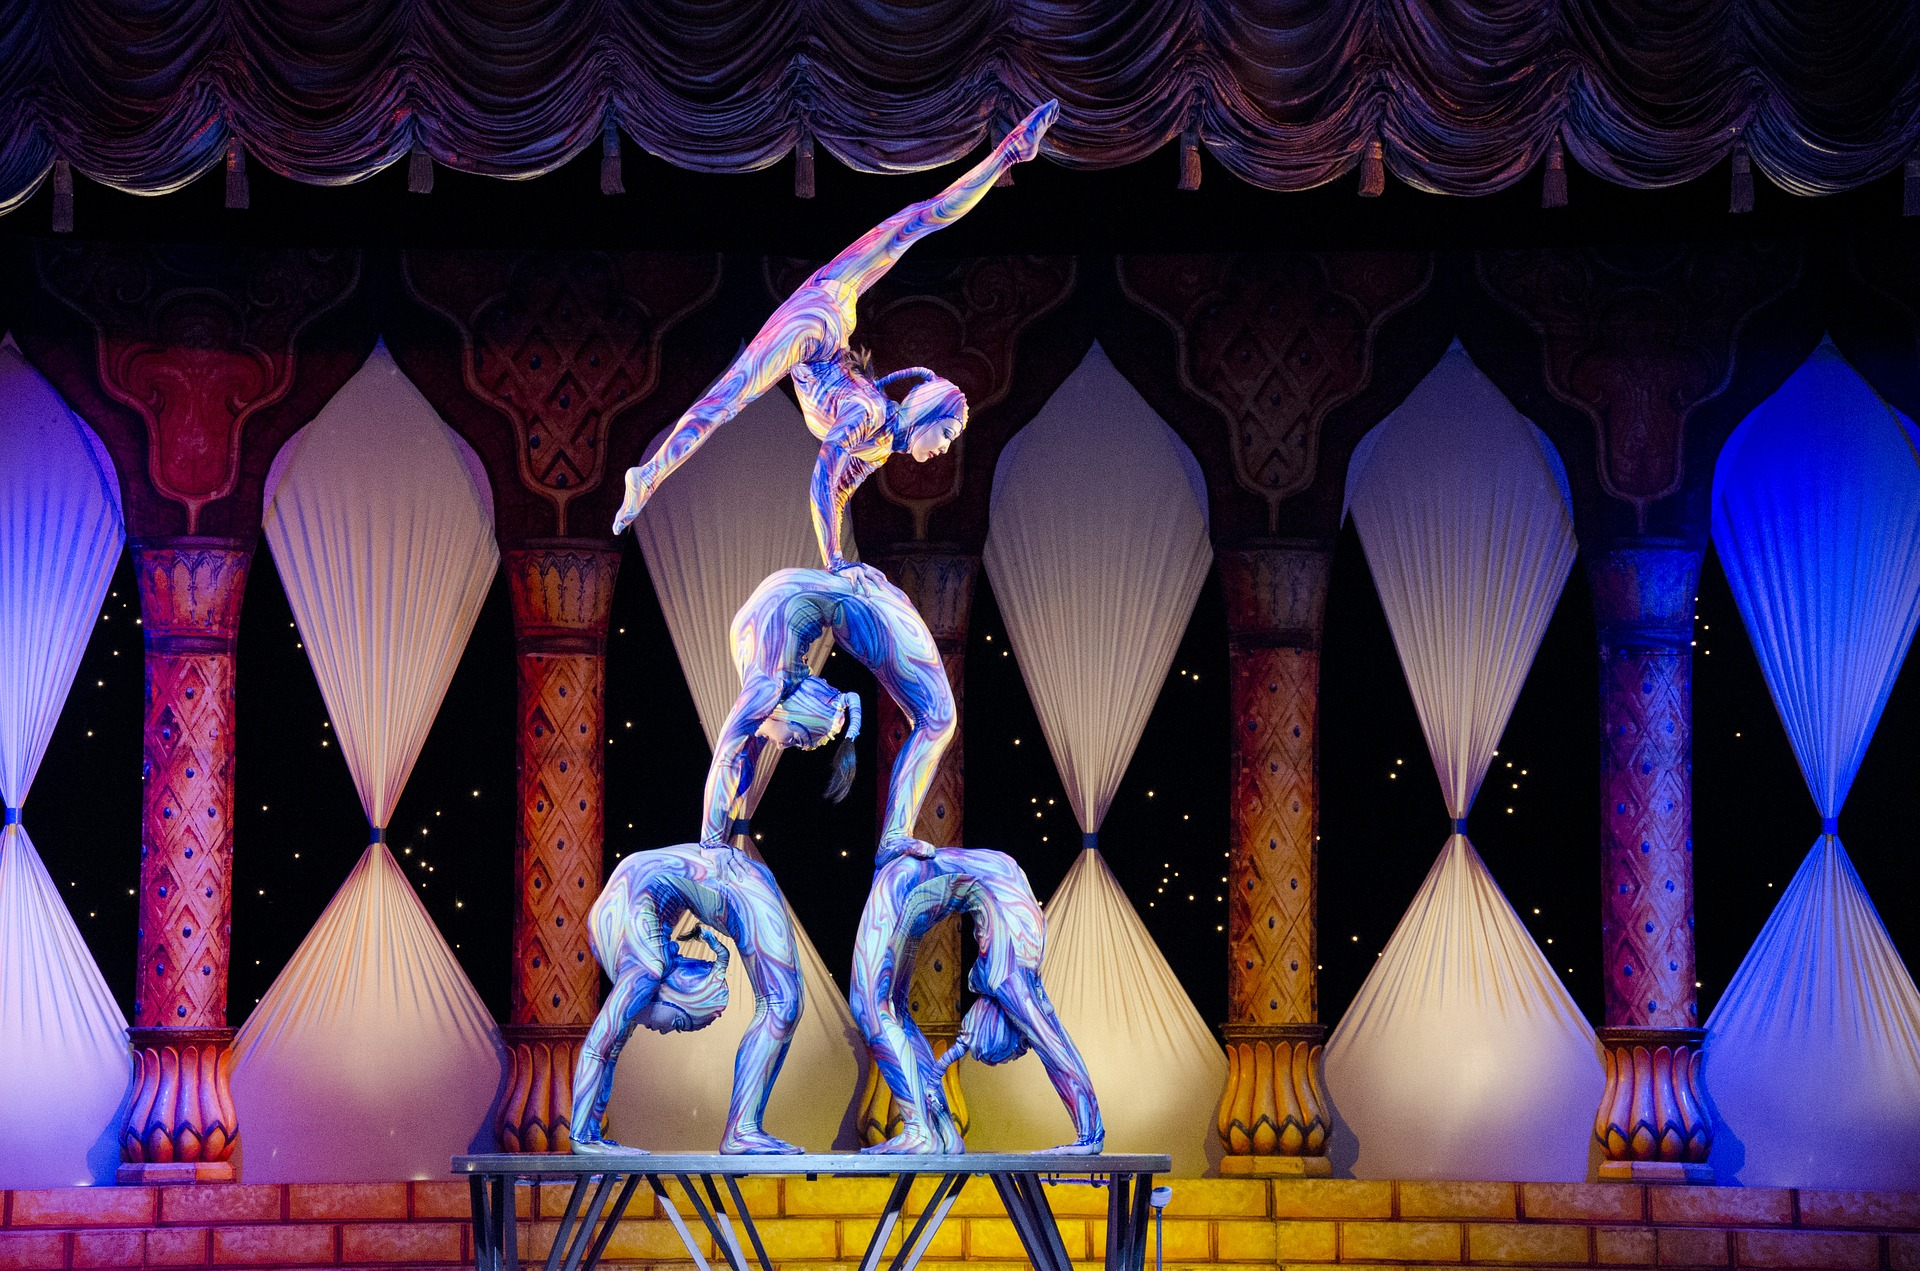 Acrobats, entertainers, circus, performers